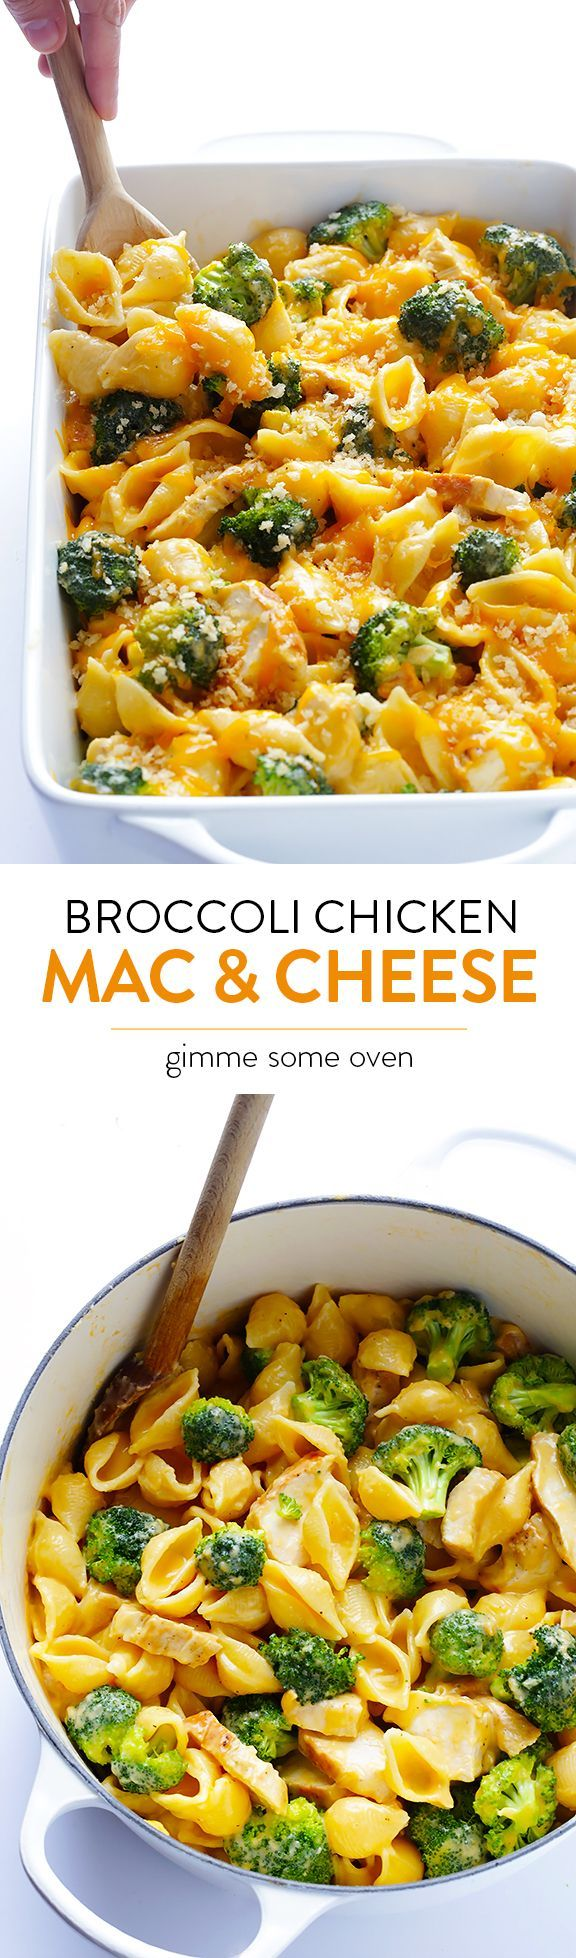 Broccoli Chicken Mac & Cheese -- easy to make, super tasty, and you can serve it stovetop-style or baked